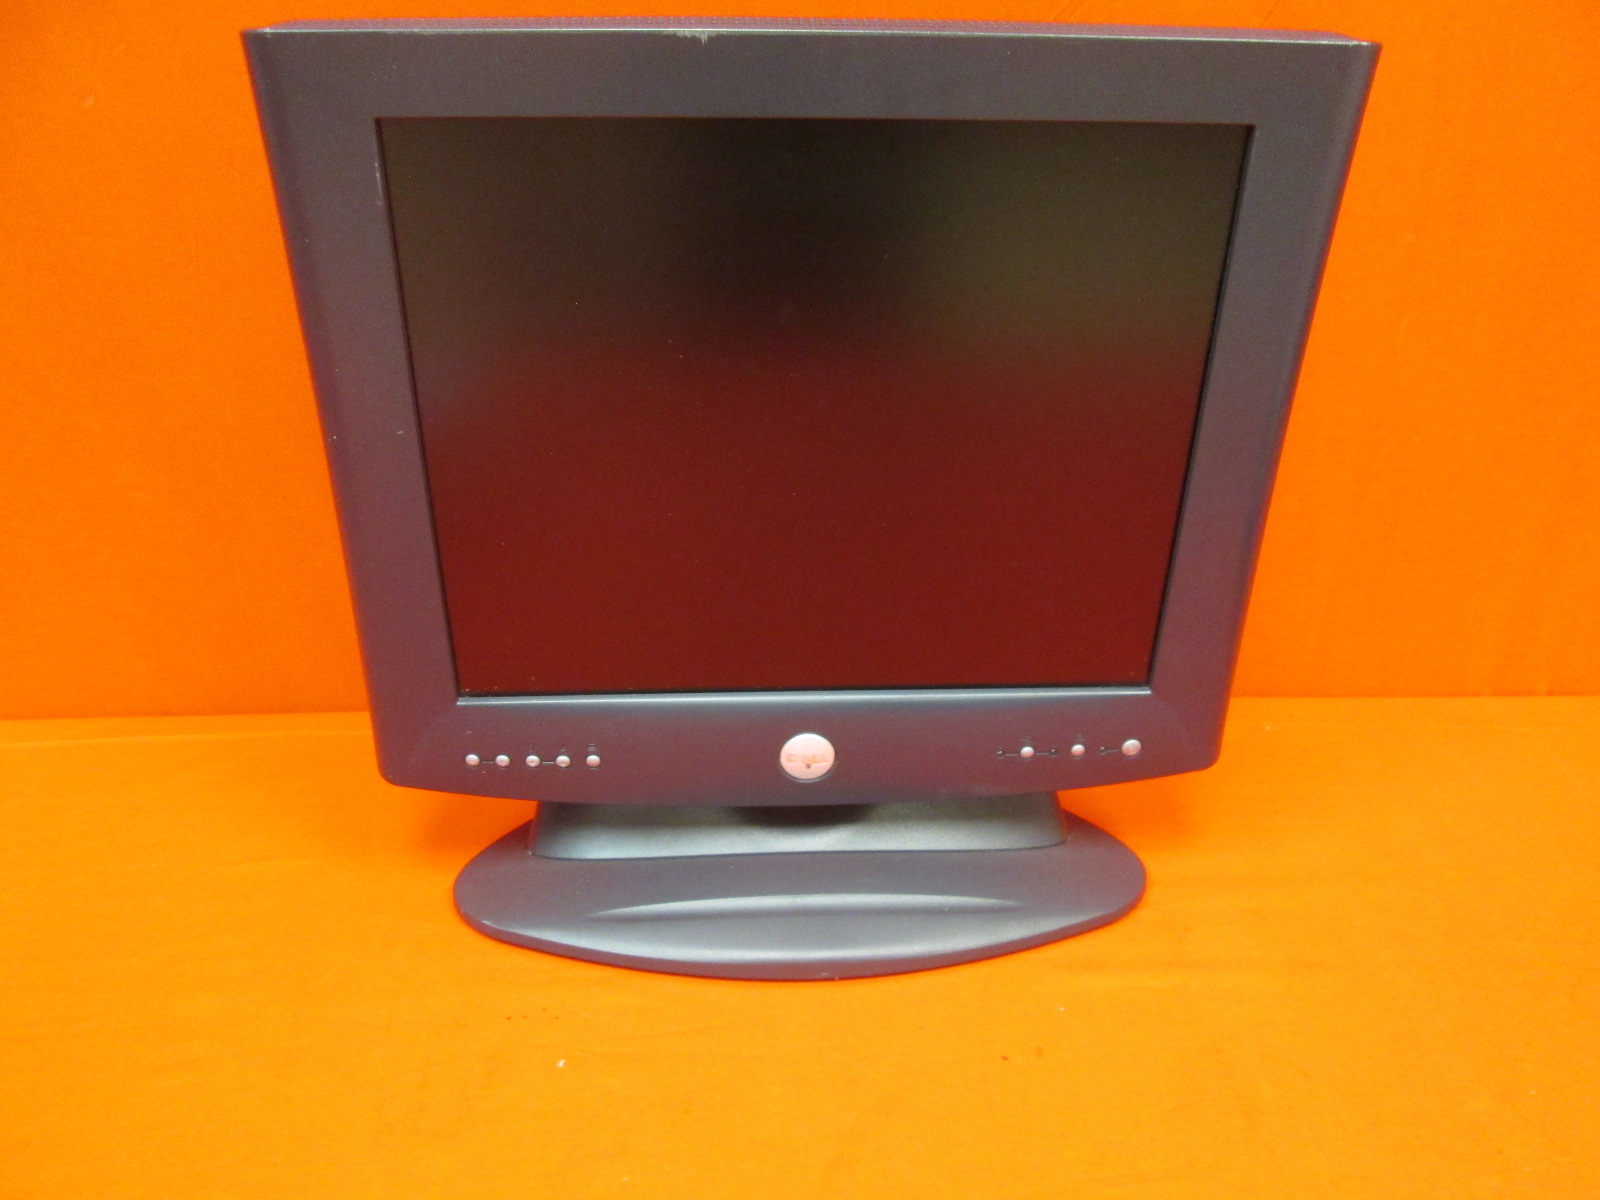 Dell Ultrasharp 1701FP LCD Monitor 17 Inch Incomplete